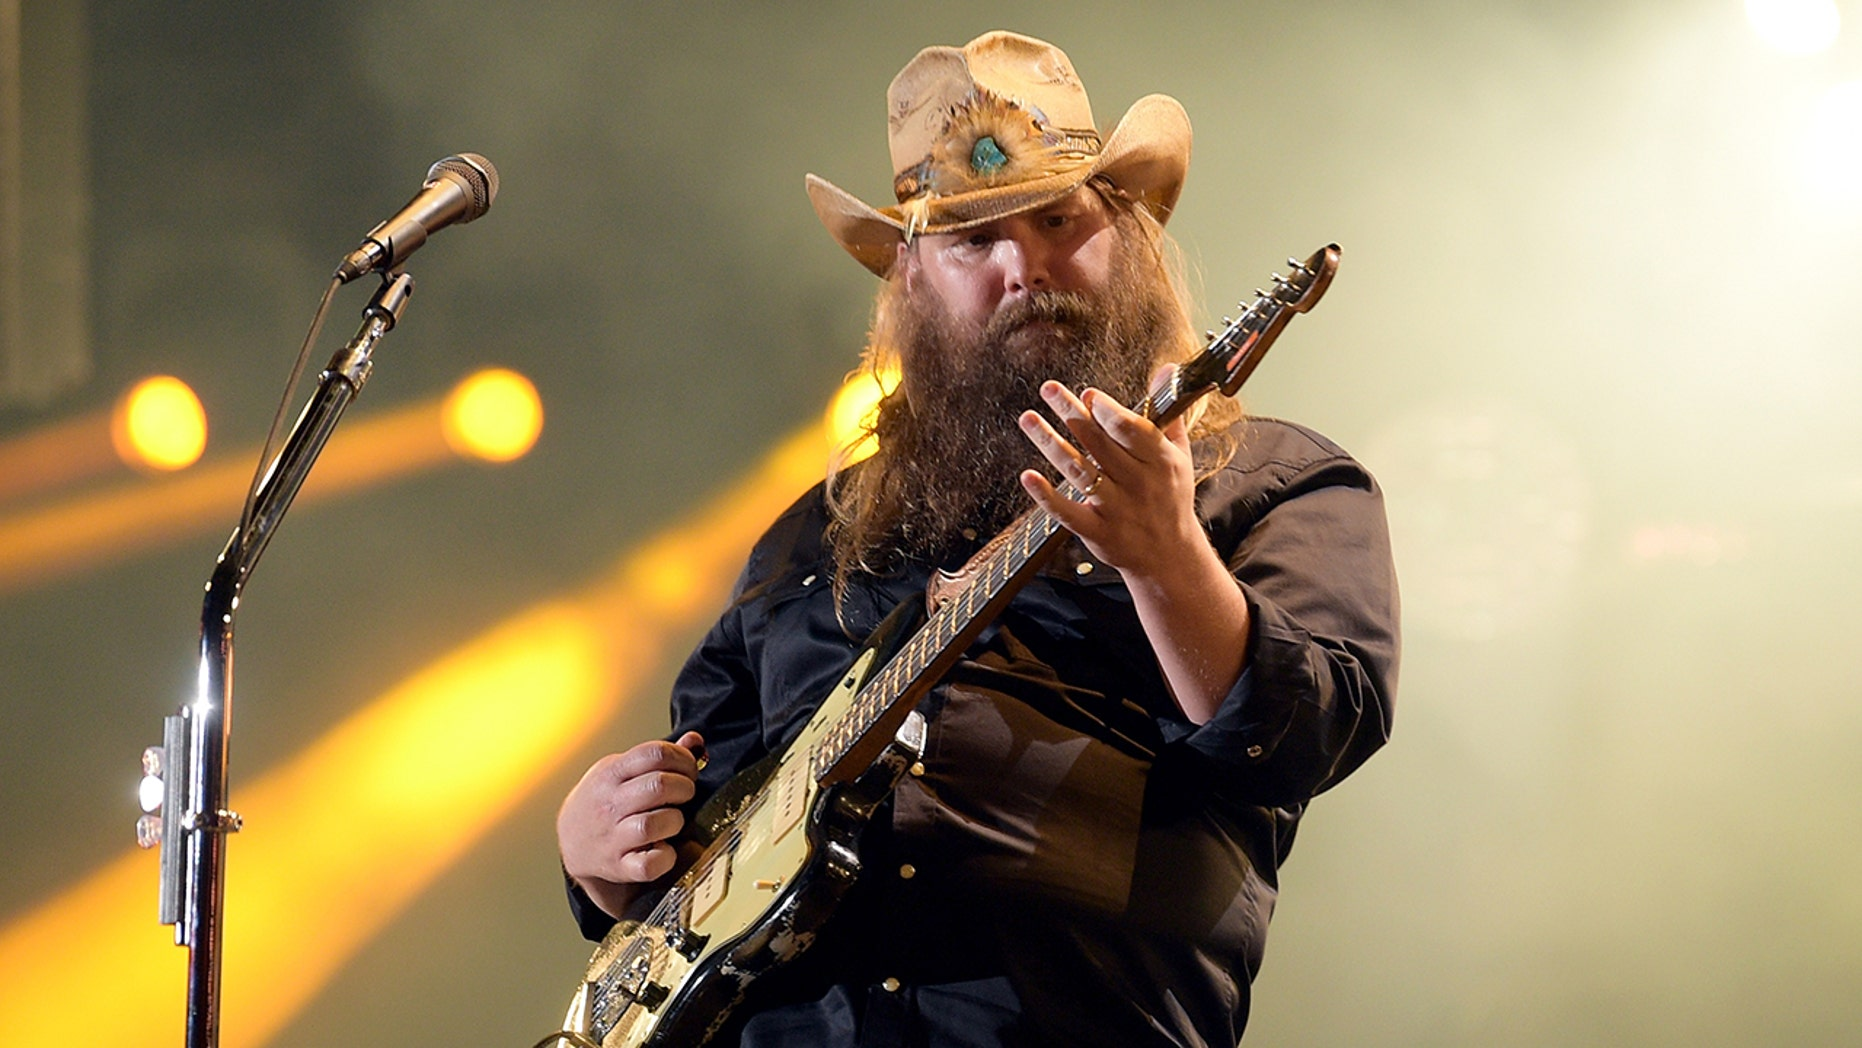 Chris Stapleton performs onstage during the 2018 CMA Music festival at Nissan Stadium on June 9, 2018 in Nashville, Tennessee.